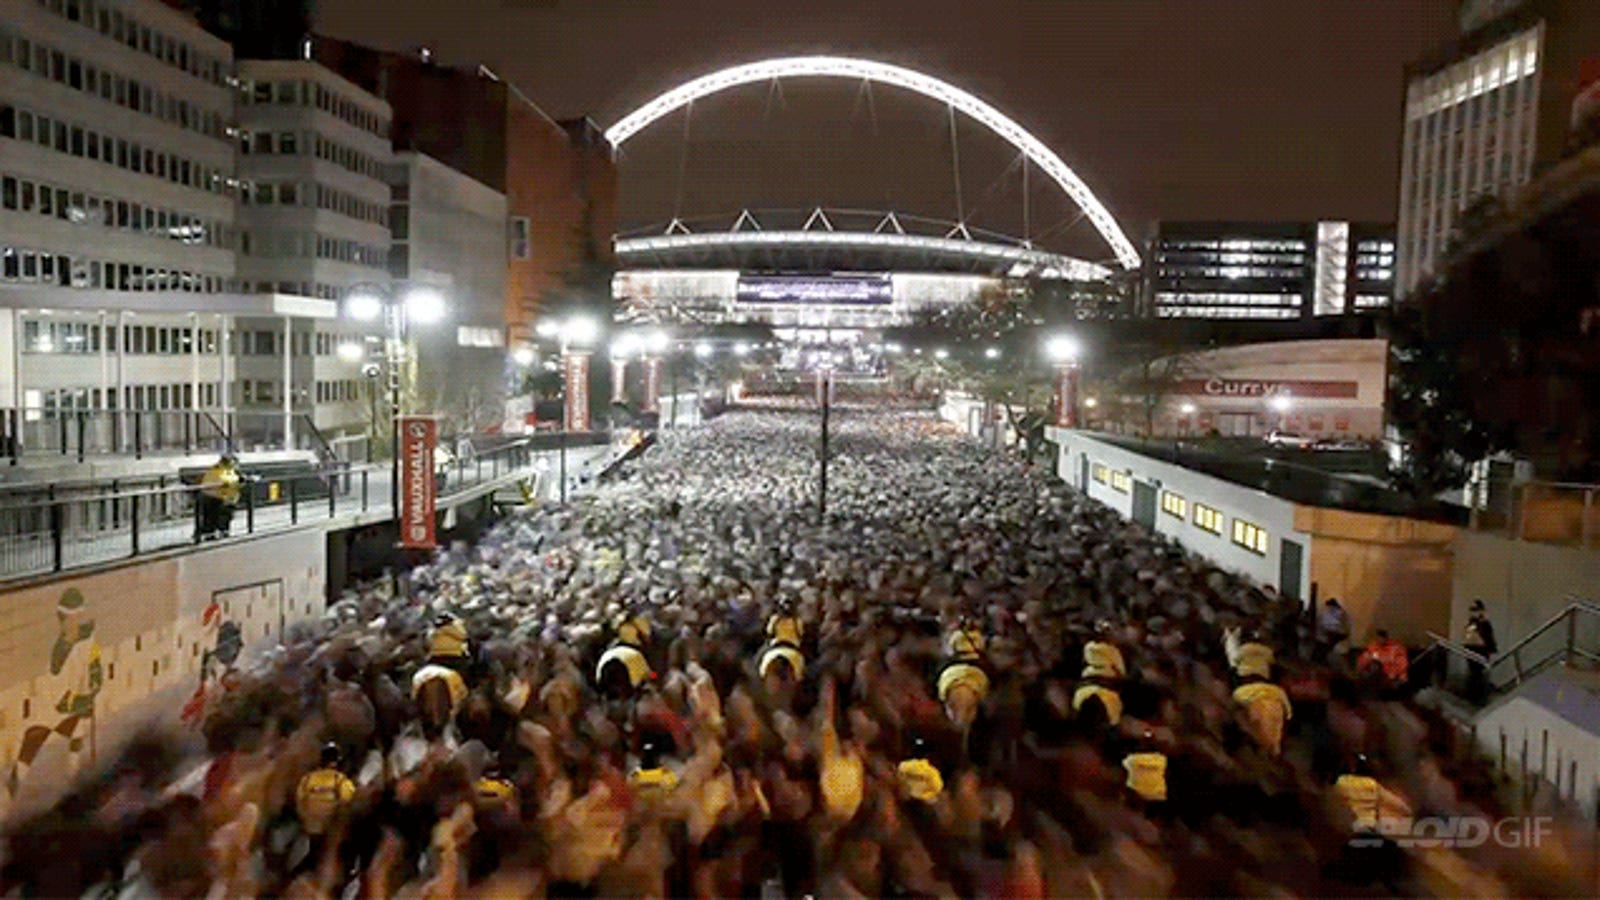 Amazing time-lapse shows river of 70,000 people leaving Wembley Stadium